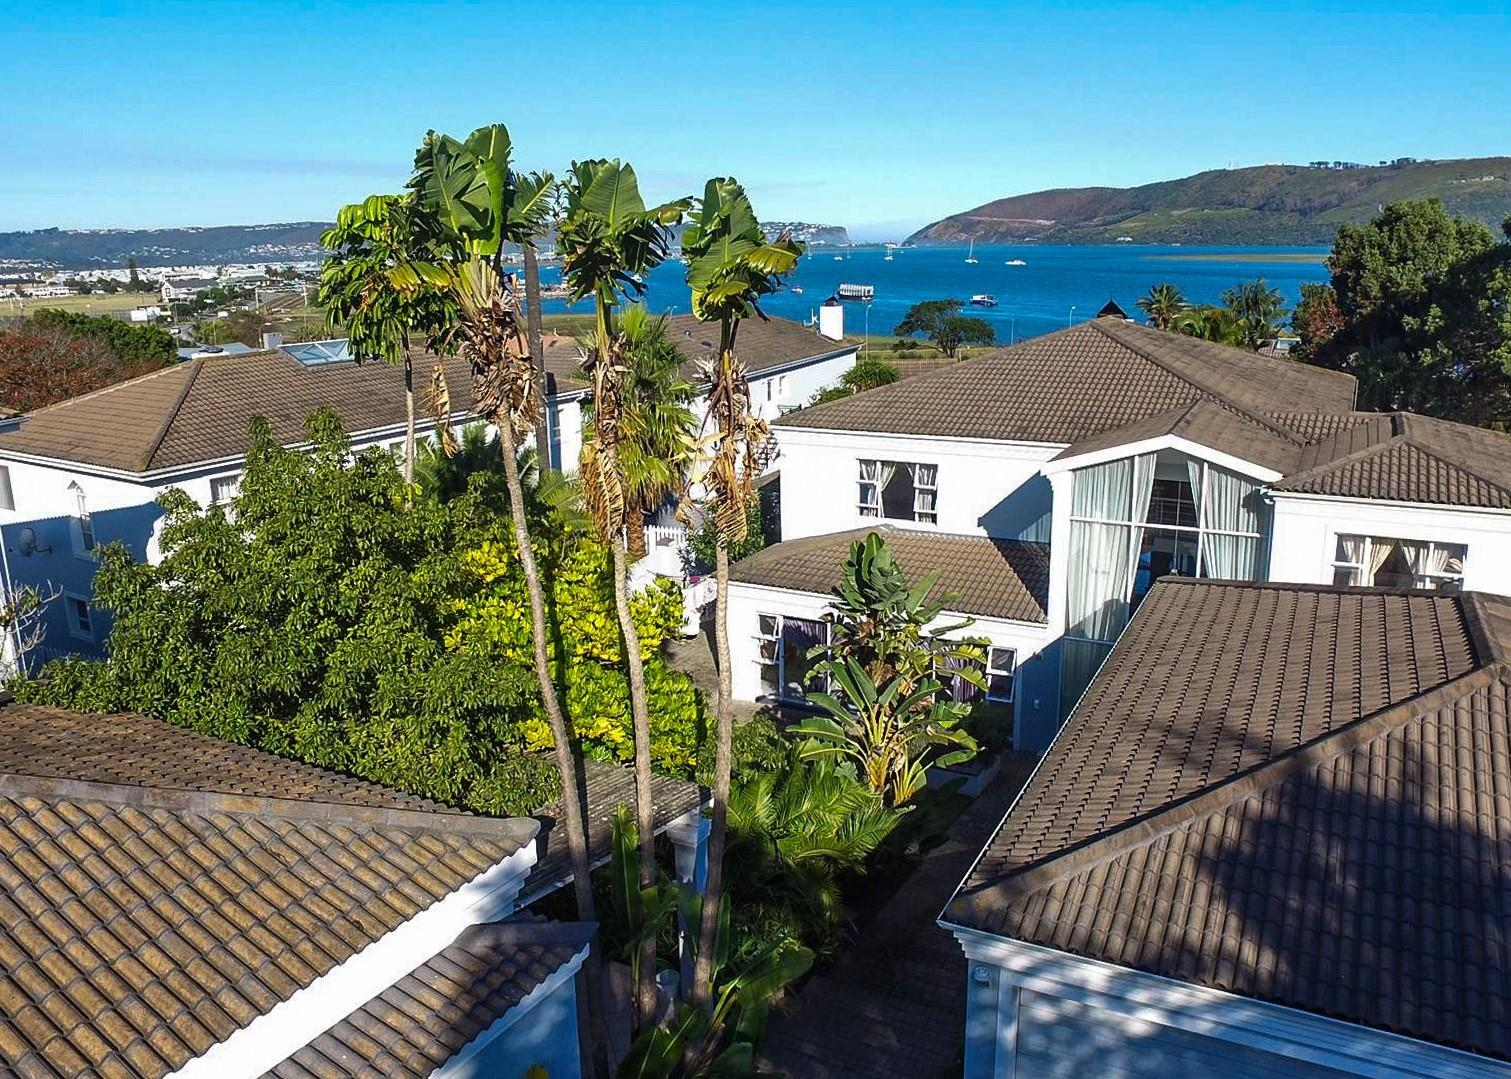 7 Bedroom House For Sale in Paradise